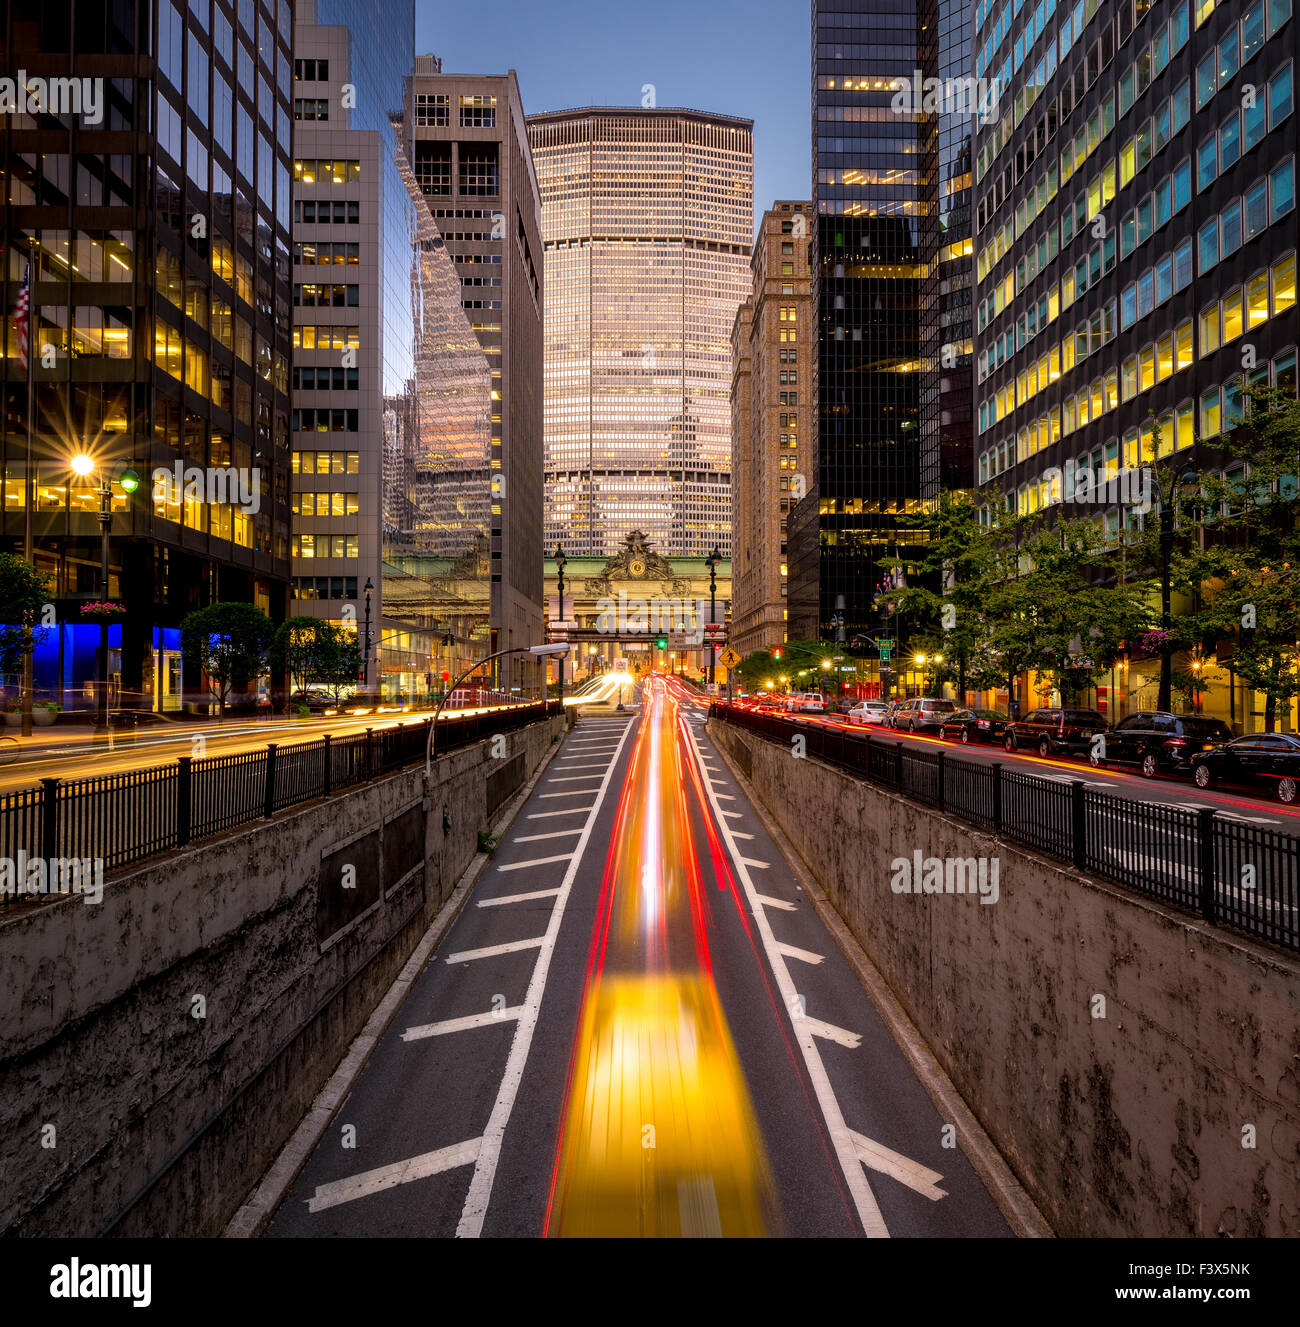 Location de light trails in Park Avenue South, Midtown, Manhattan. Lumière du soir sur New York City skyscrapers Photo Stock